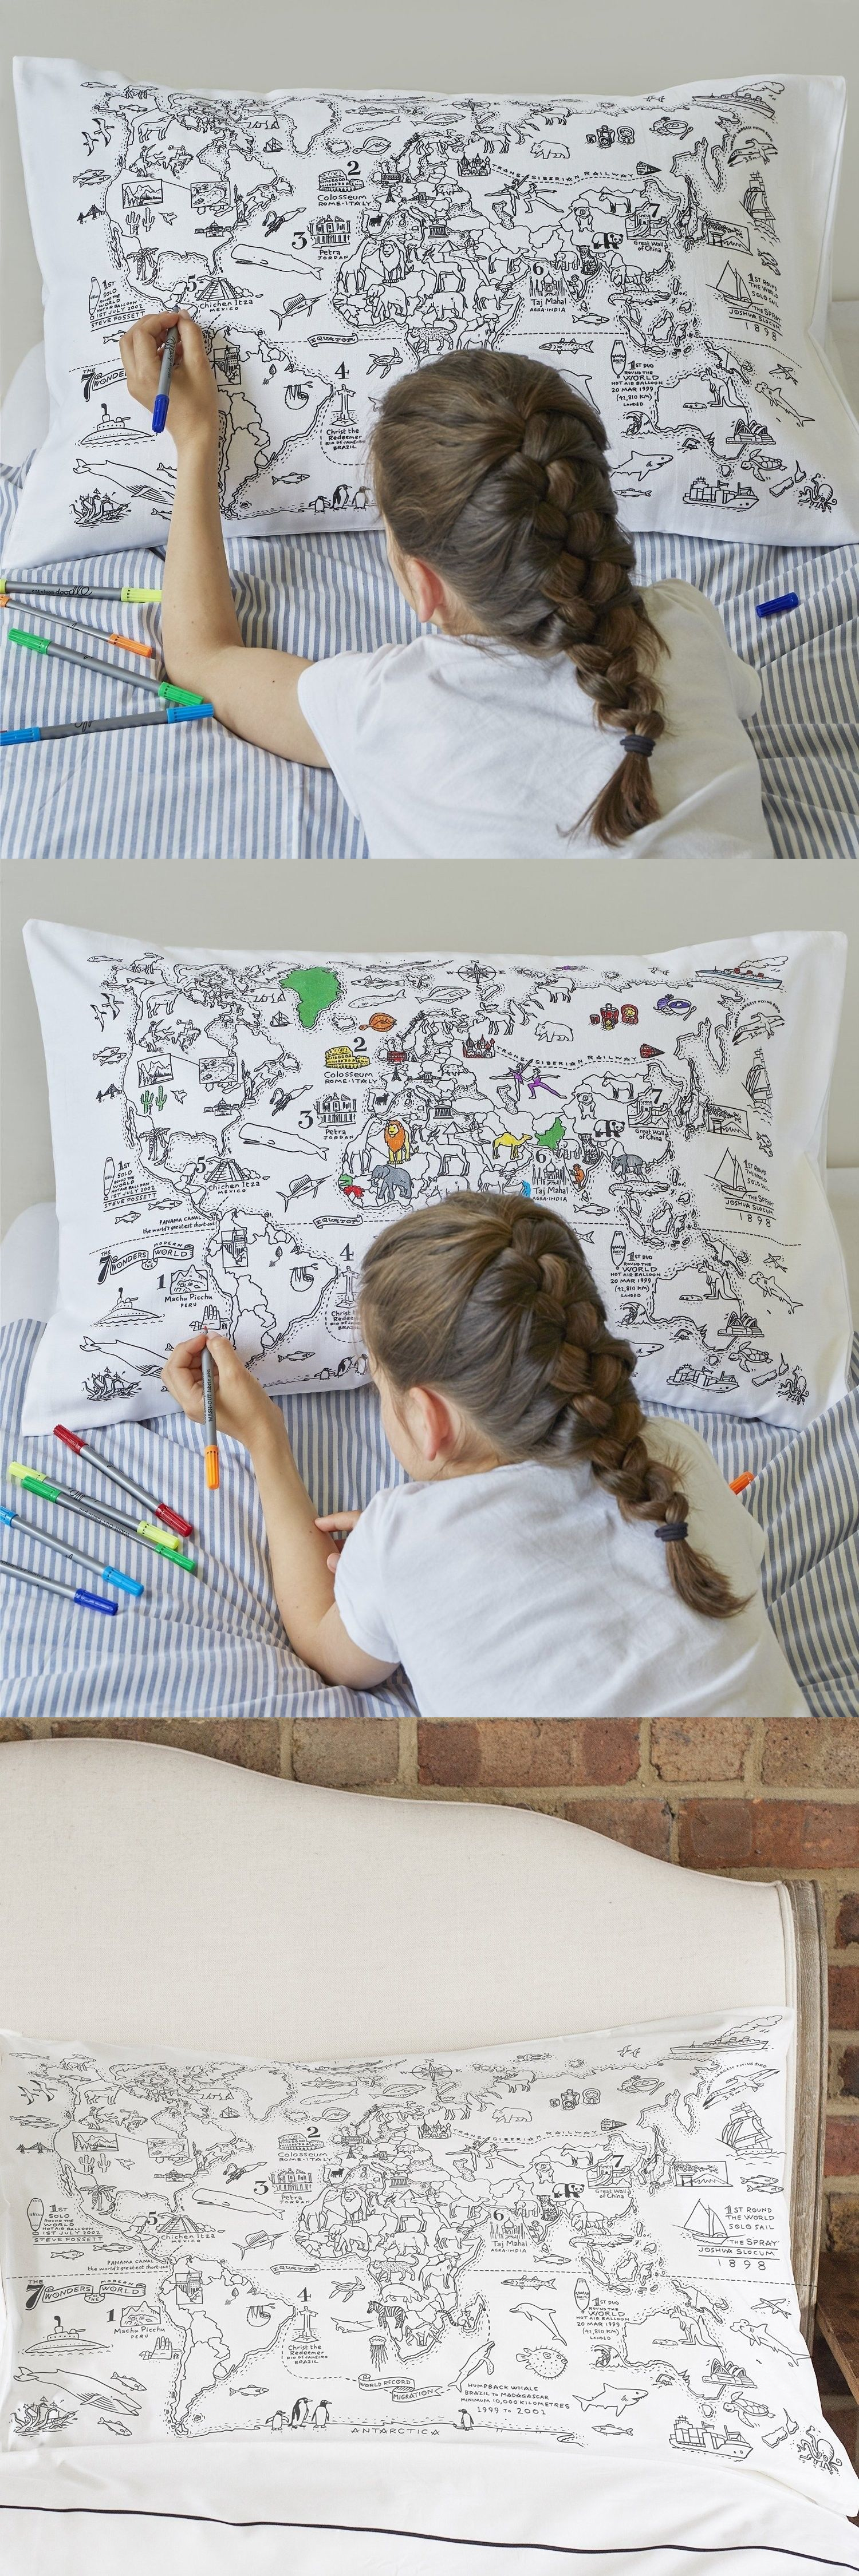 Pillowcases 115628 doodle world map pillowcase color your own pillowcases 115628 doodle world map pillowcase color your own pillow case coloring pillowcase gumiabroncs